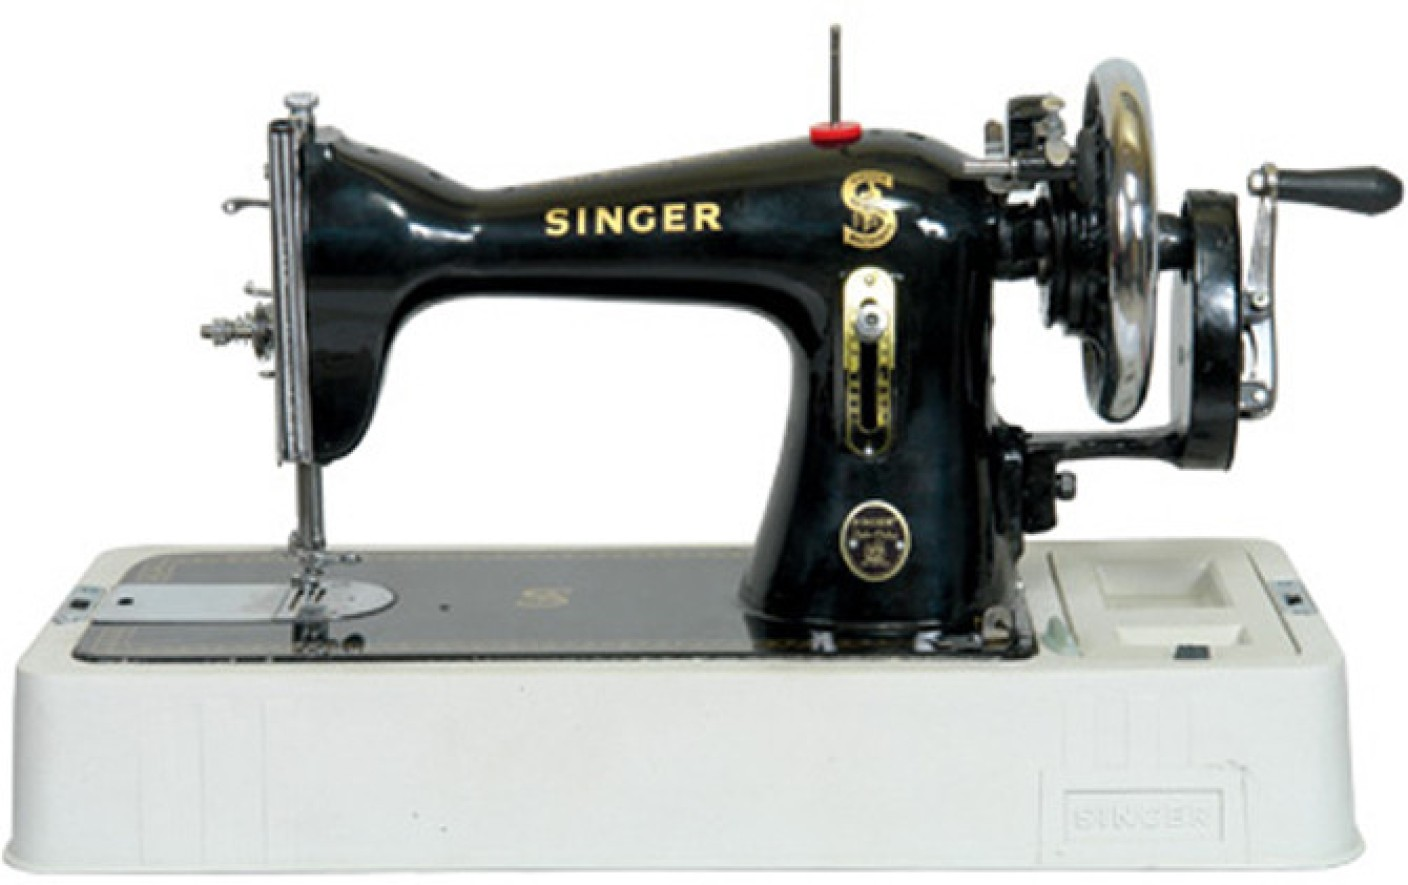 Singer Tailor Deluxe Manual Sewing Machine Price in India ...